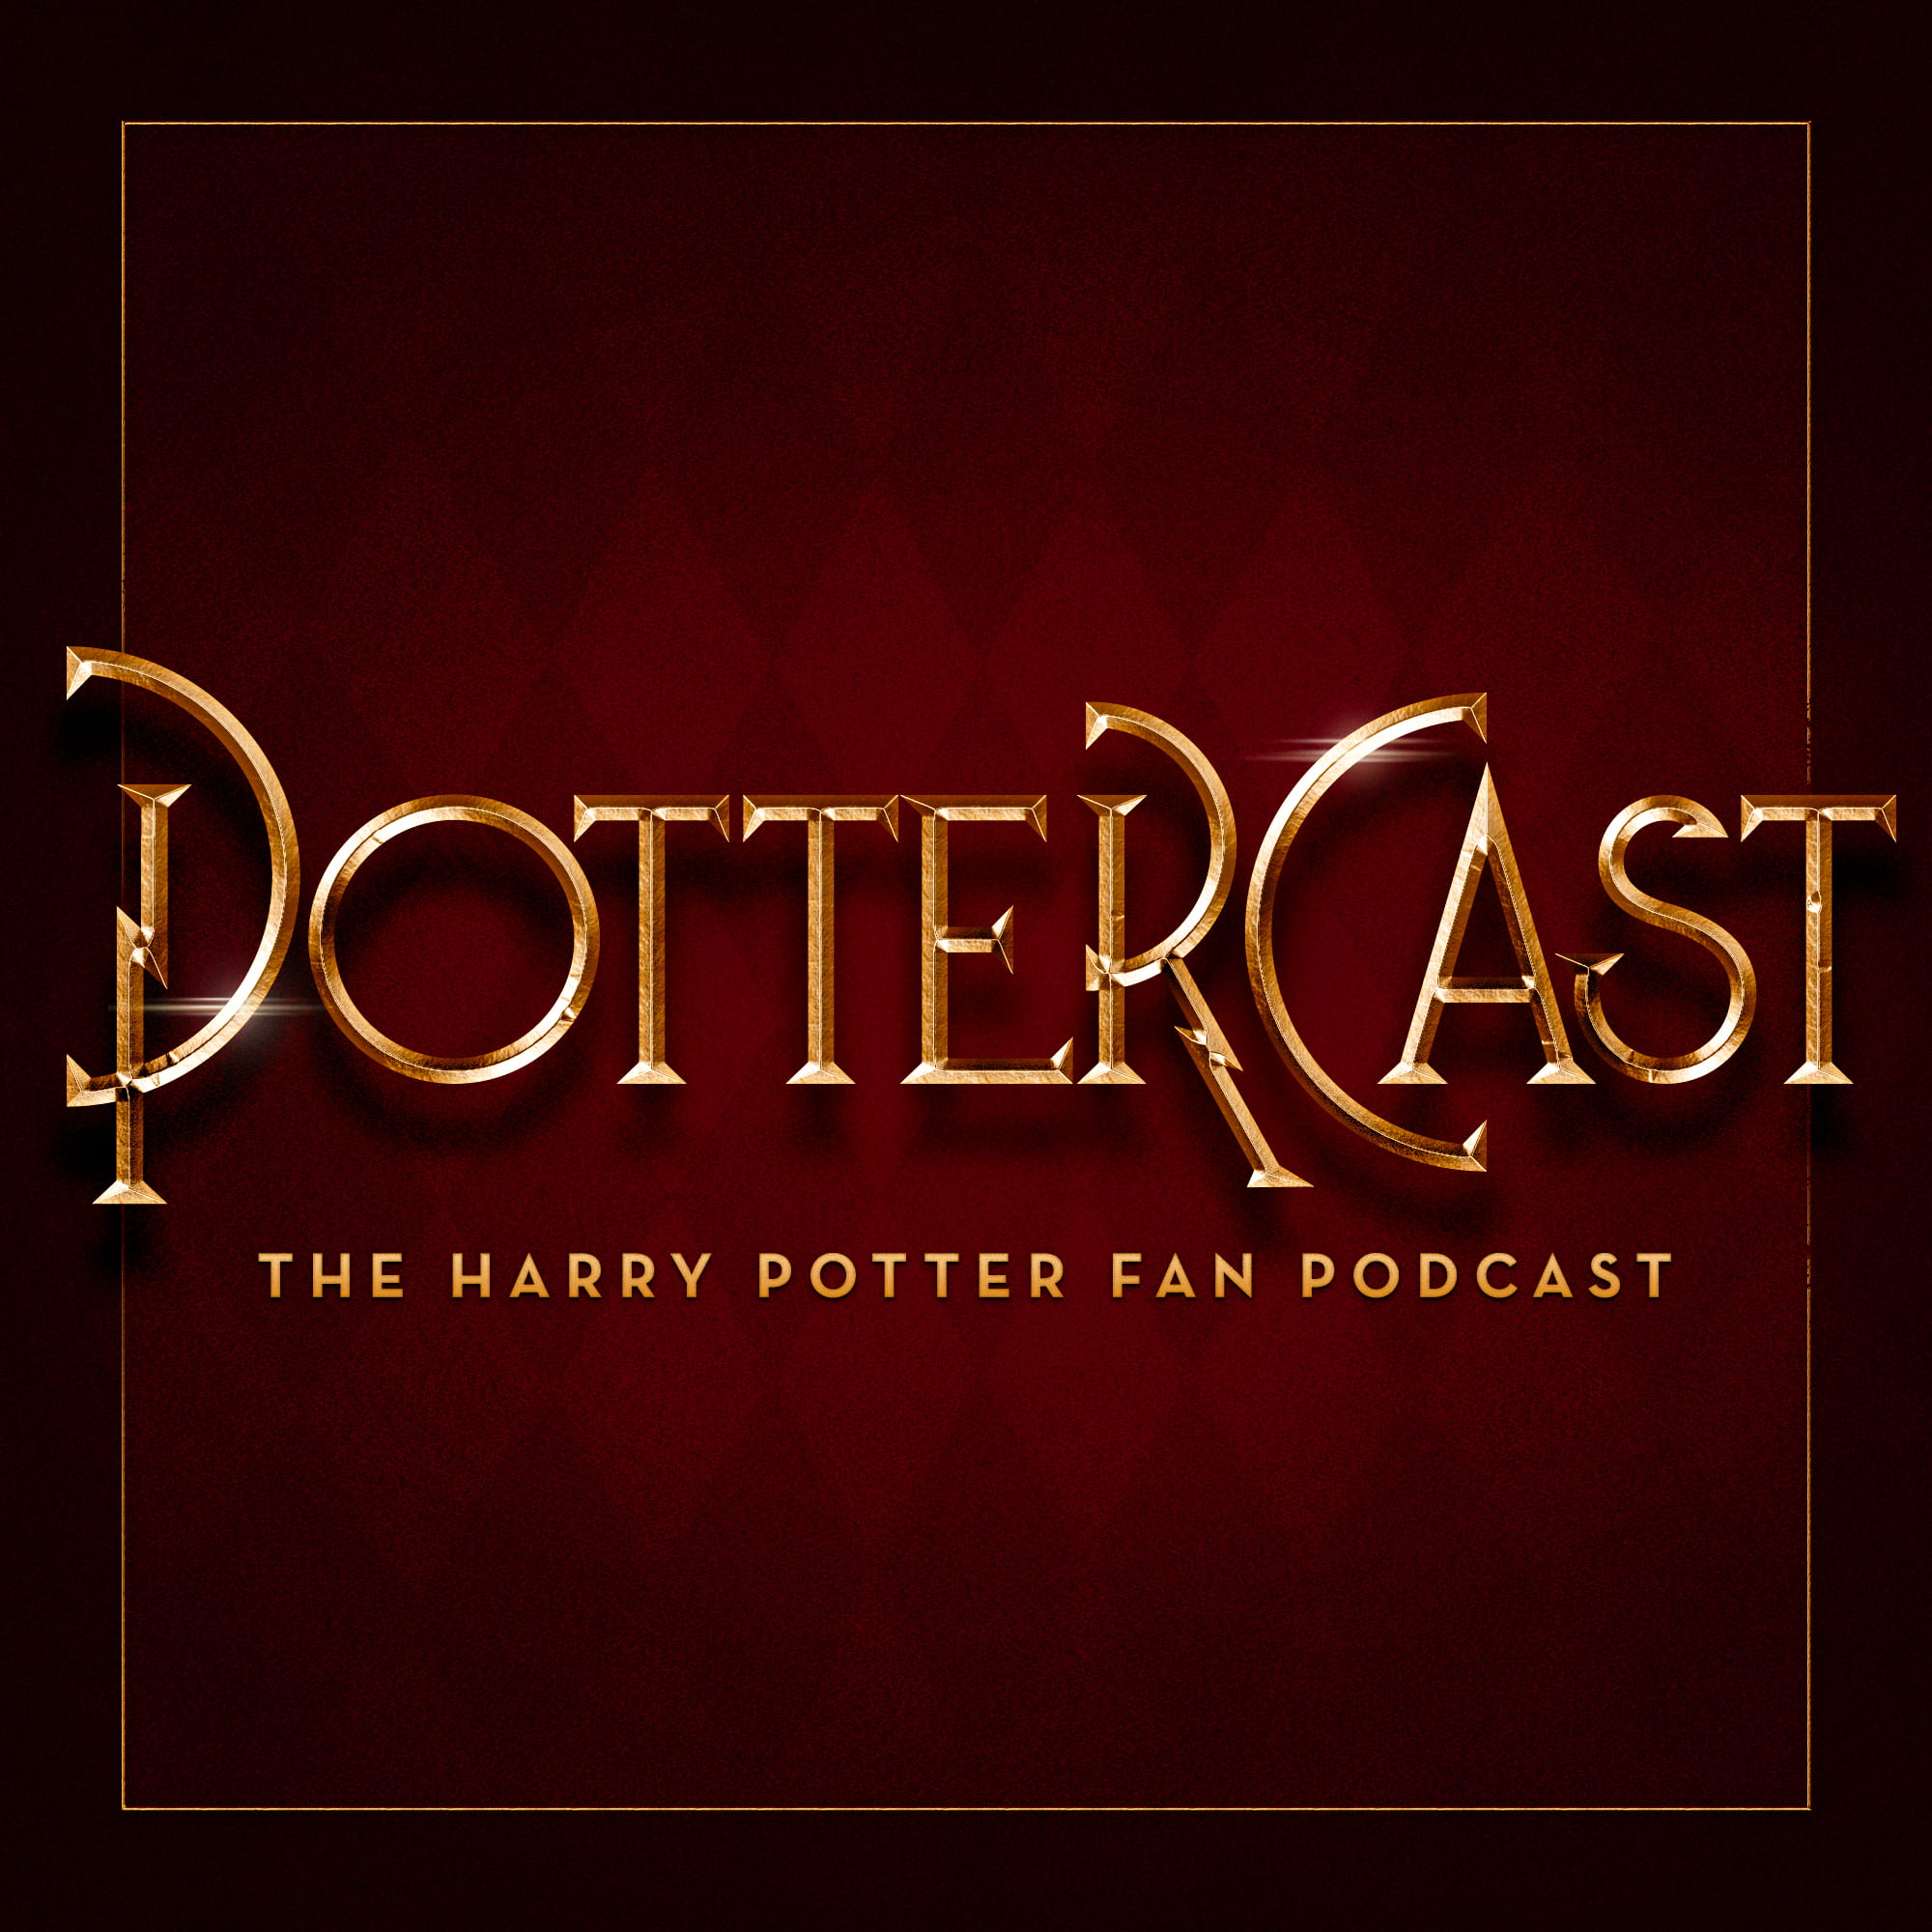 PotterCast: The Harry Potter Podcast (since 2005)